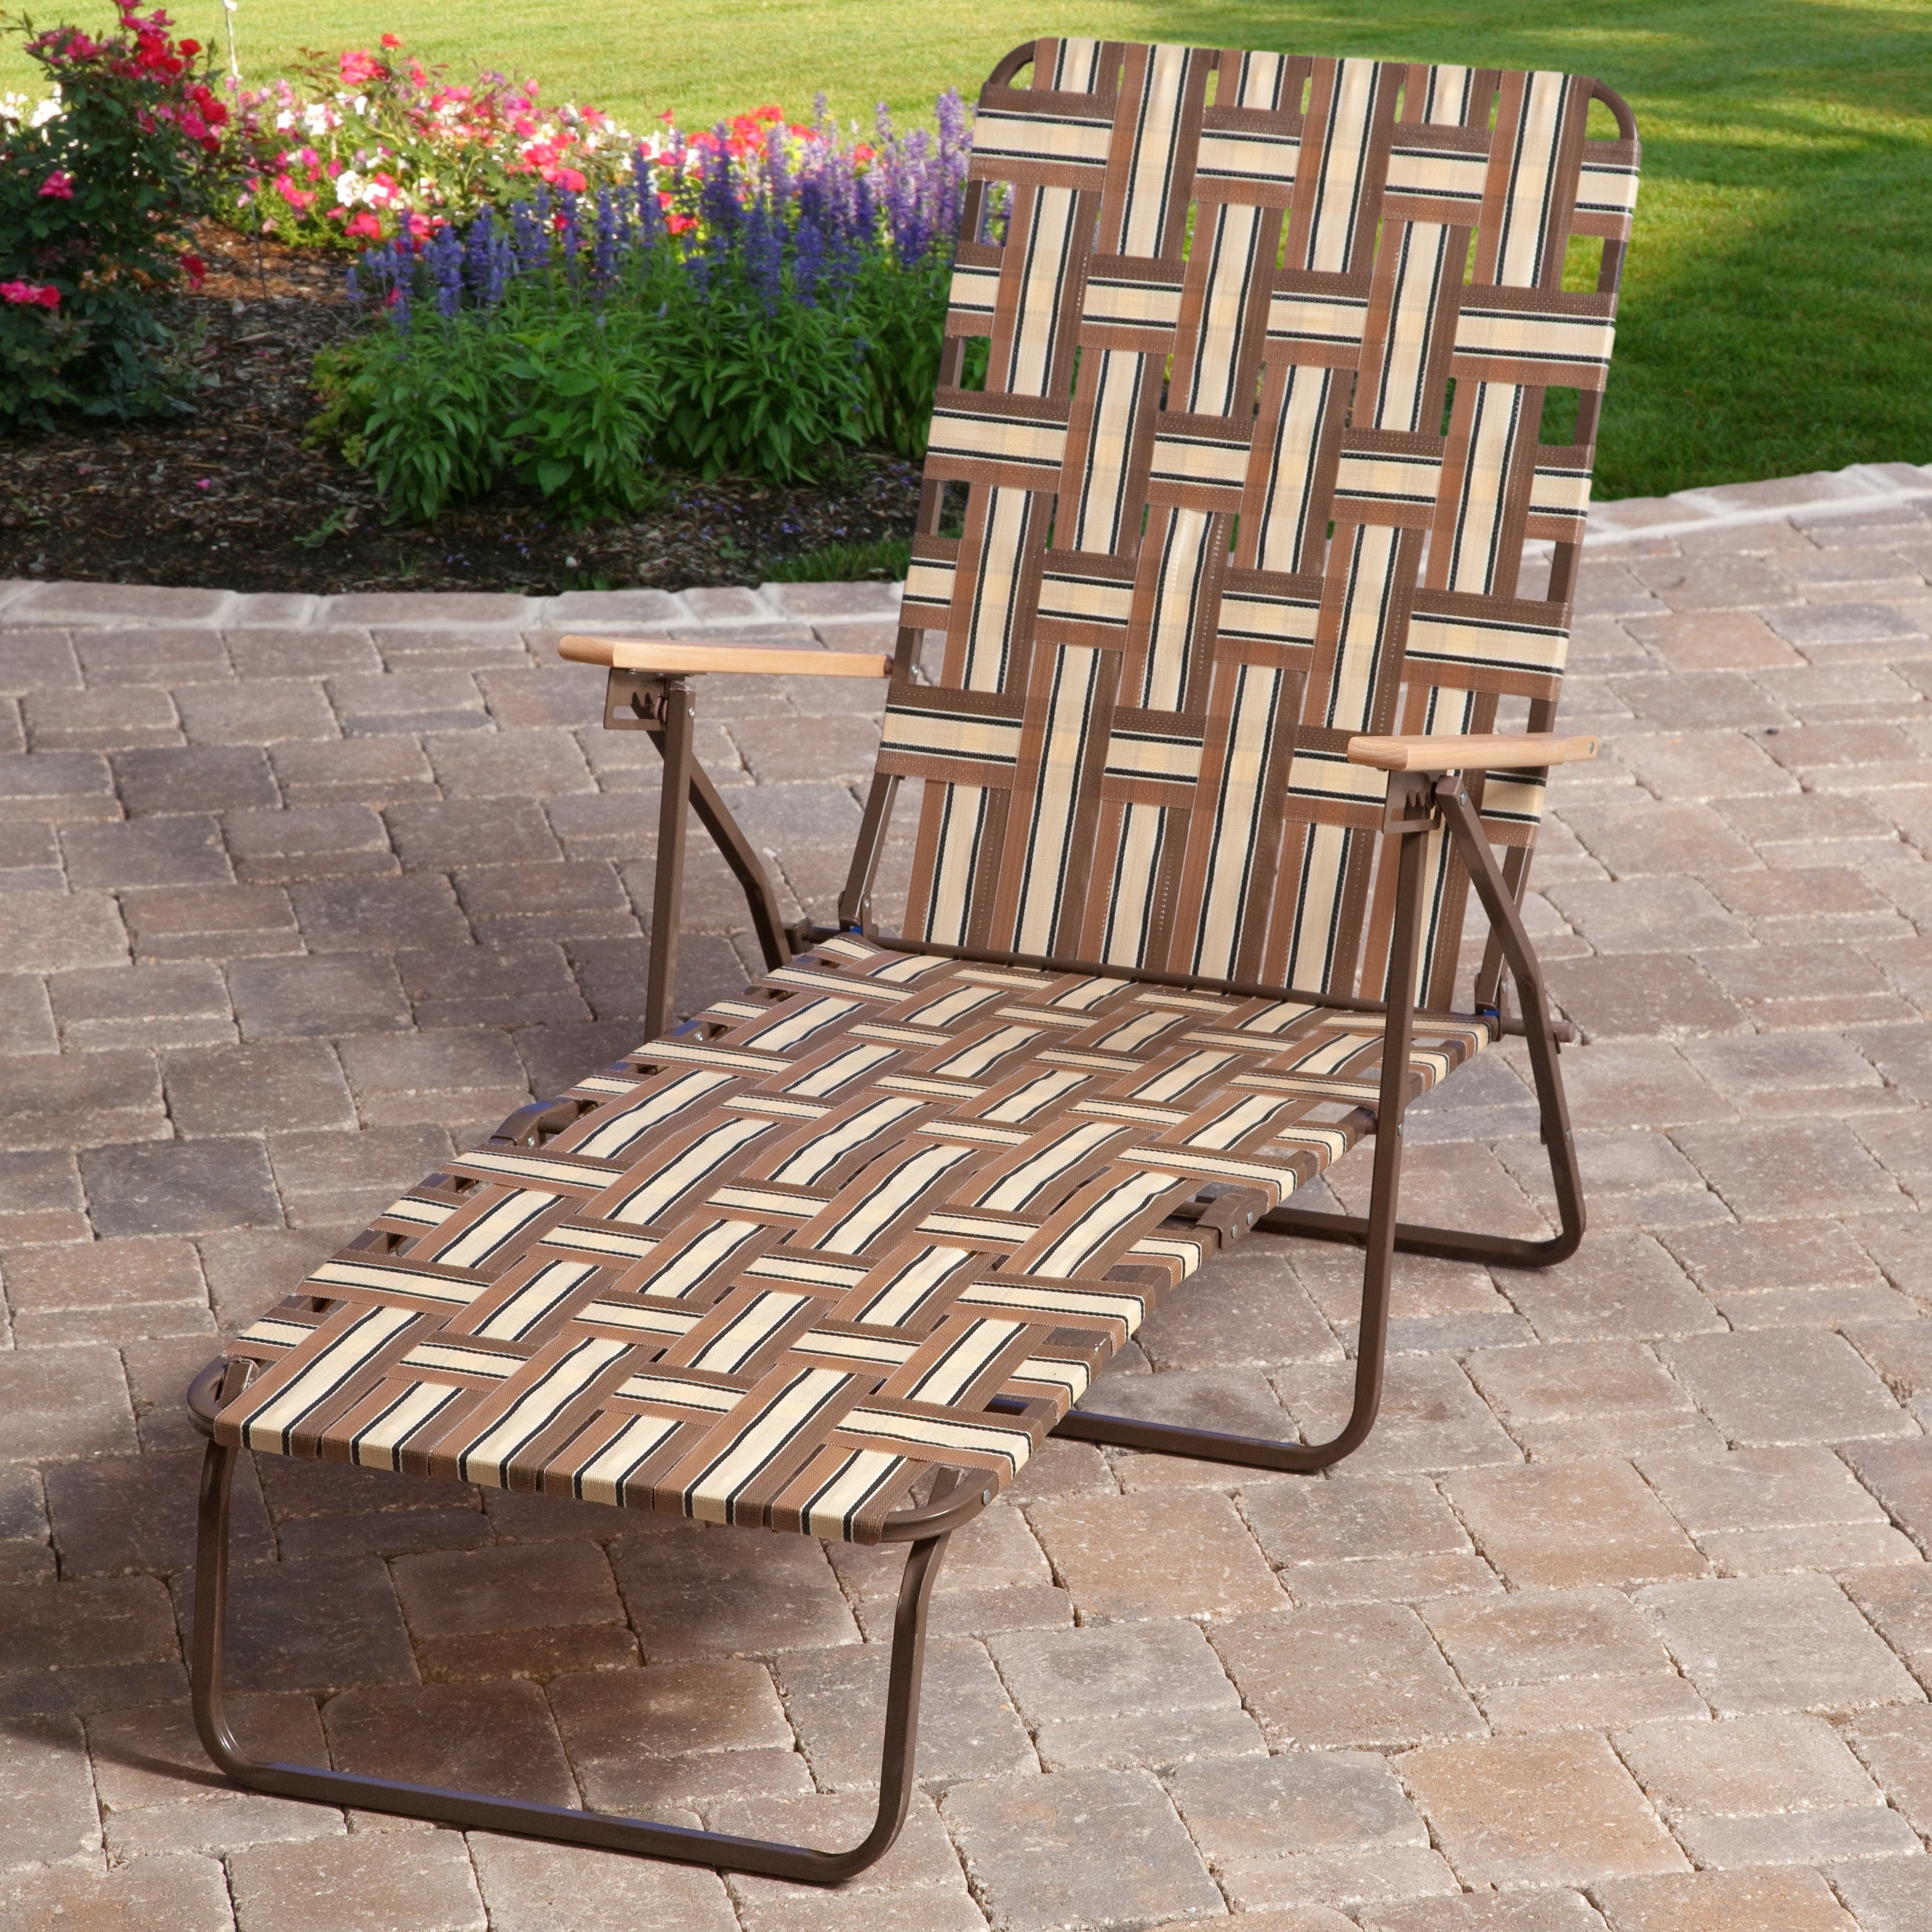 Folding Chaise Lounge Lawn Chairs Inside Most Recently Released Folding Lawn Chair Lounger • Lounge Chairs Ideas (View 3 of 15)